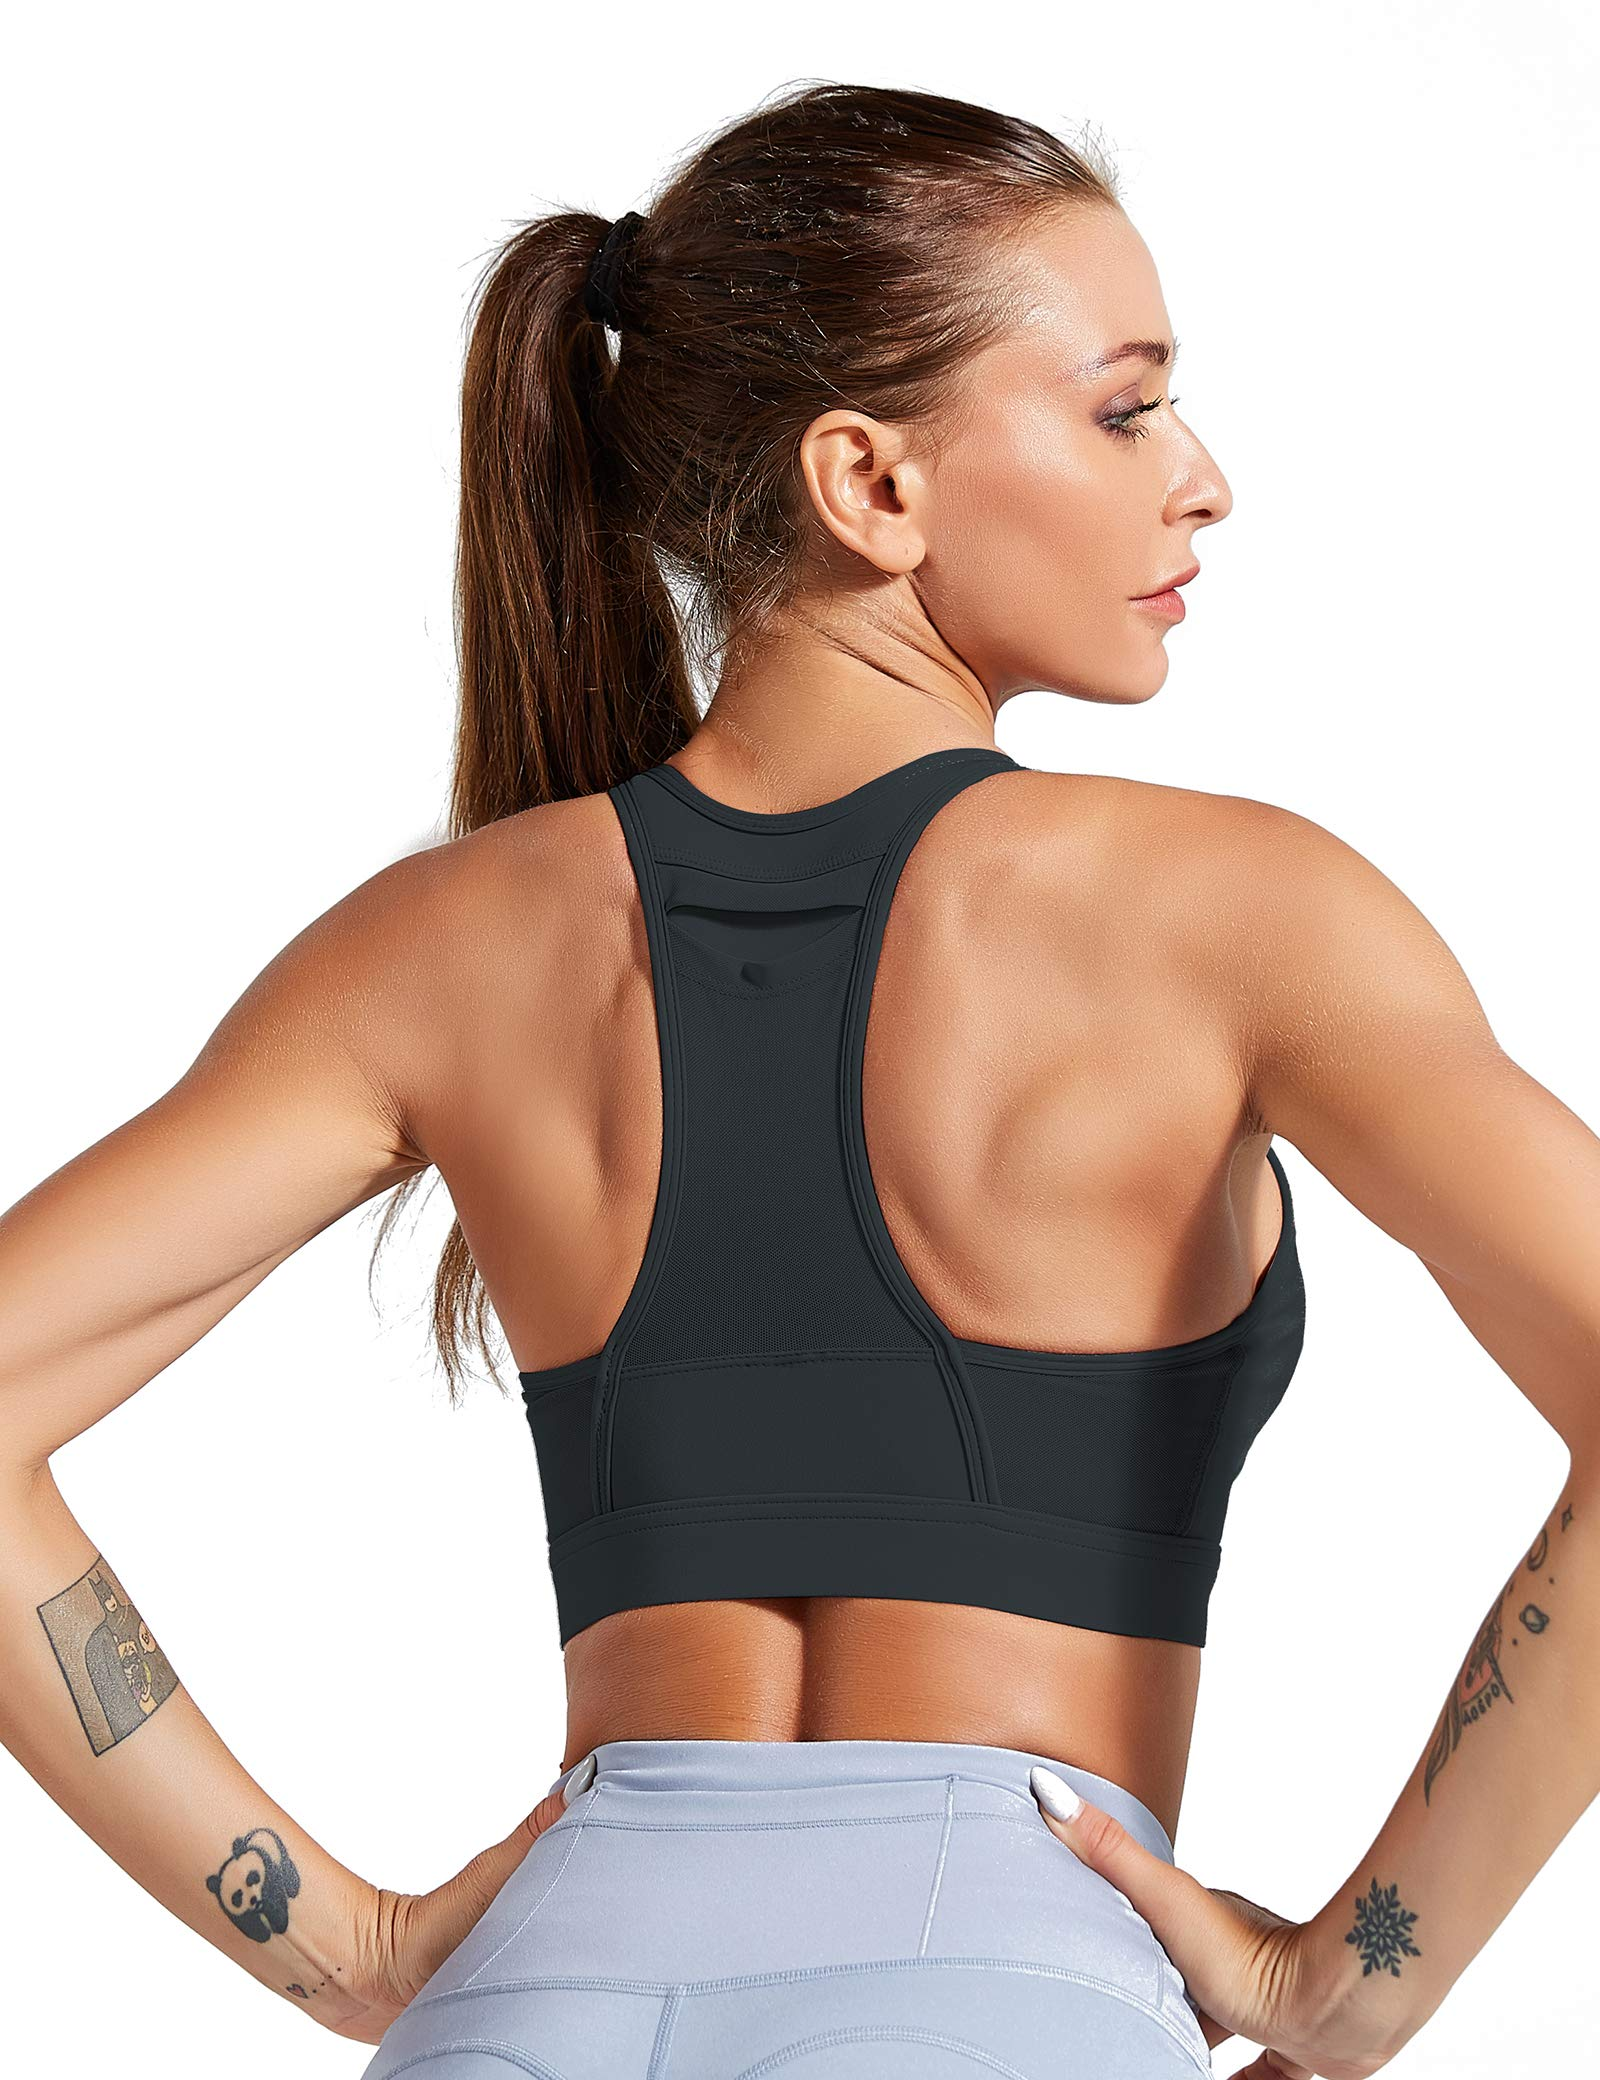 Yoga Sports Bra with Pockets High Impact Crossover Plus Size Running Workout Cardio Top with Removable Pad